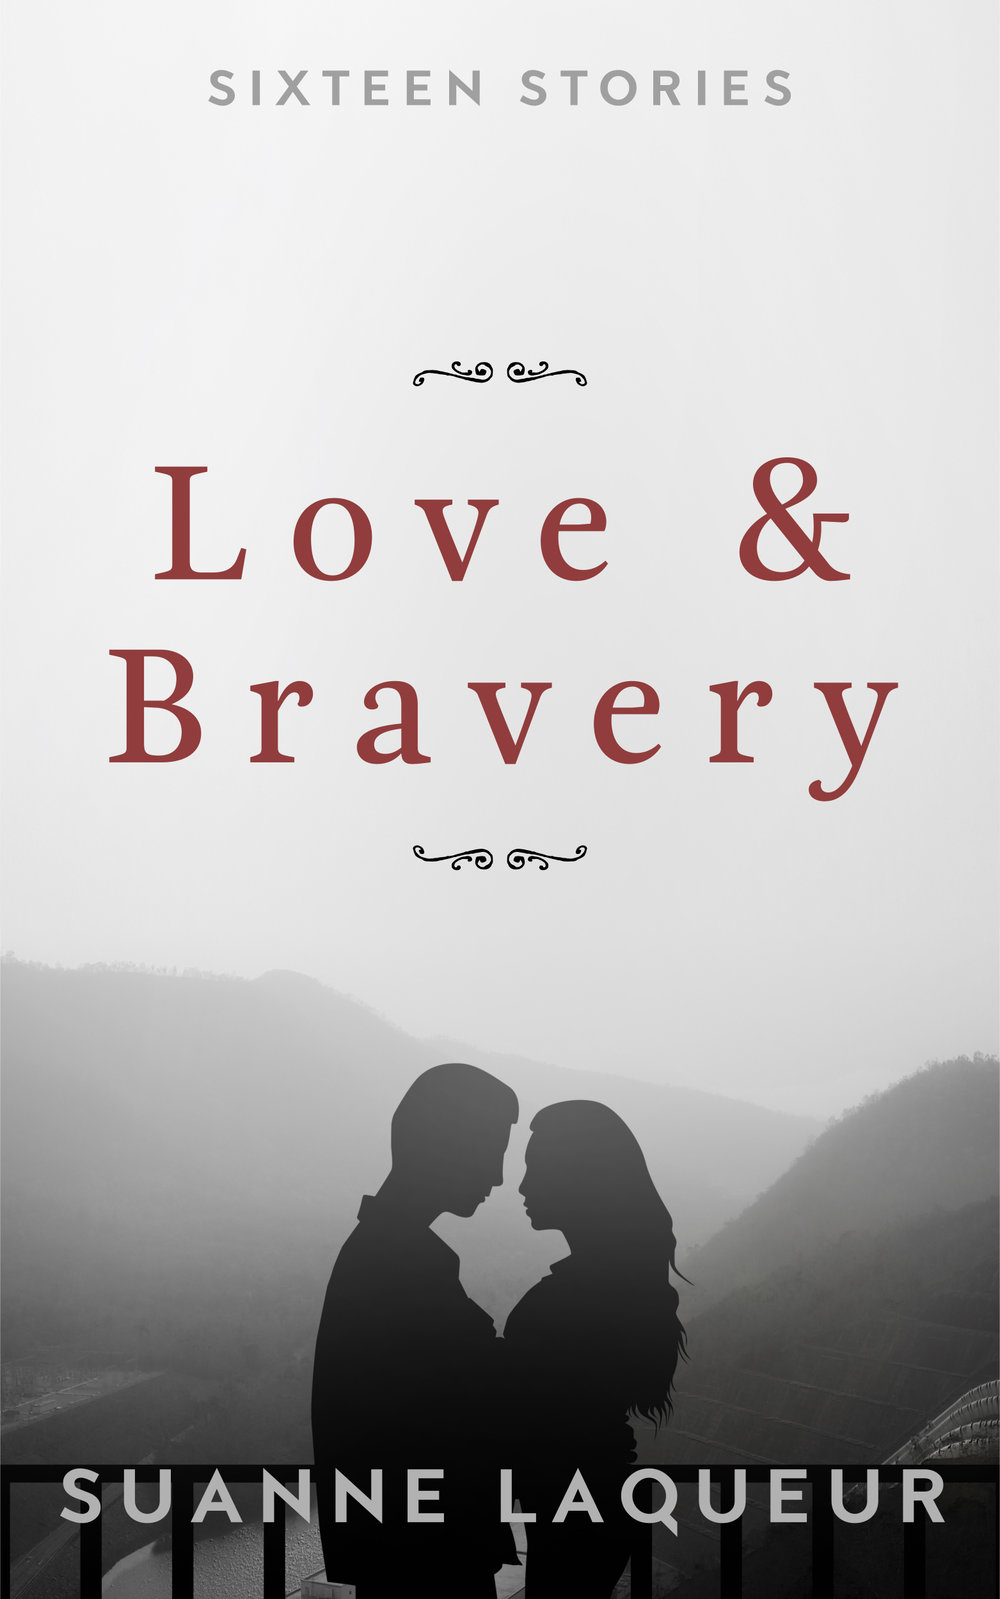 Free! - Love and Bravery is a free download for subscribers to my Reader Club.